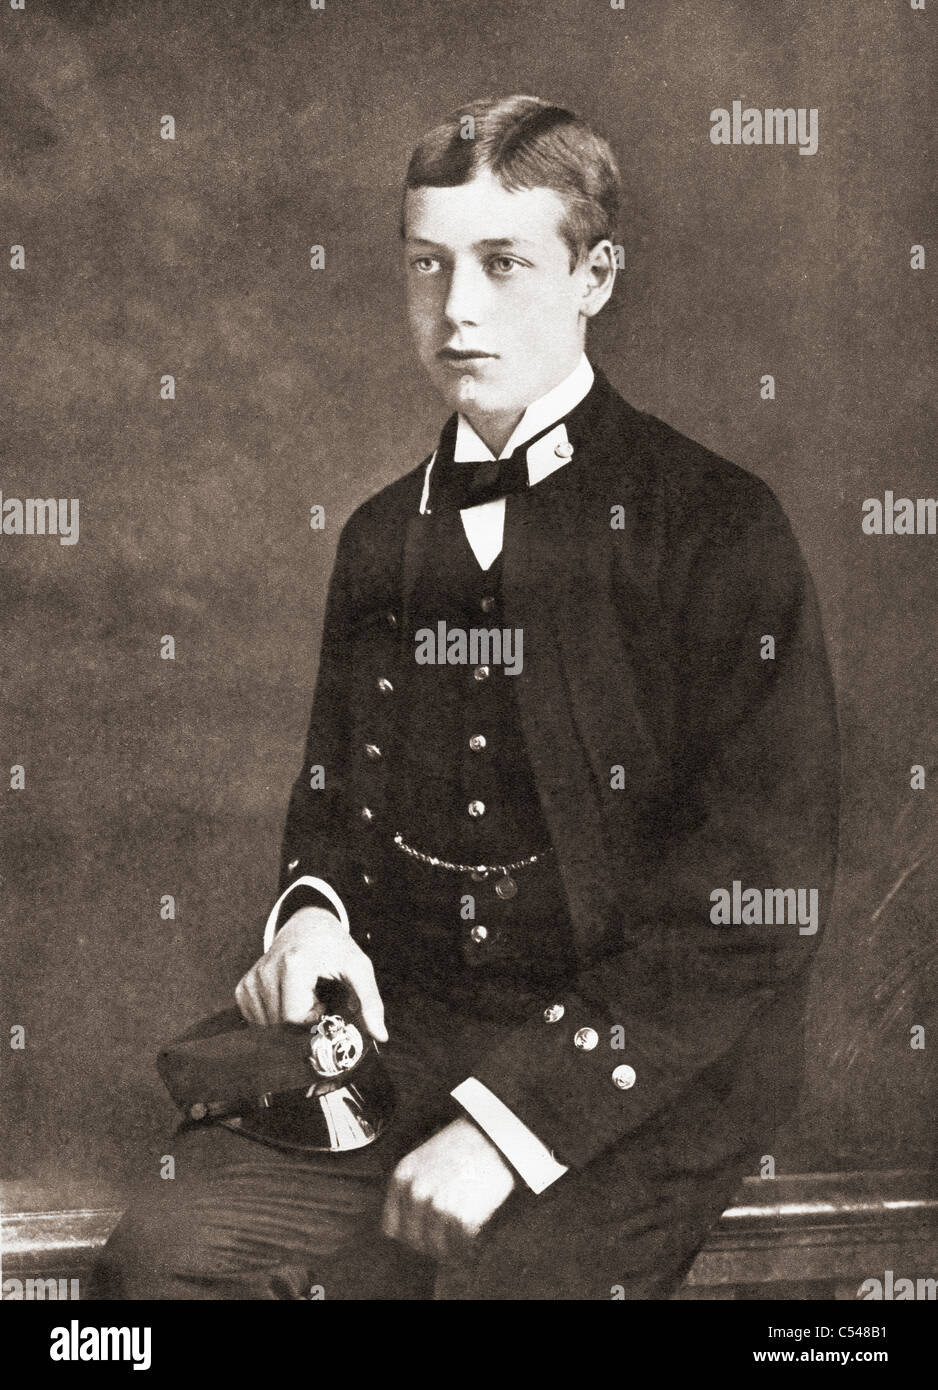 George, later King George V, as a 15 year old midshipman in 1880. - Stock Image